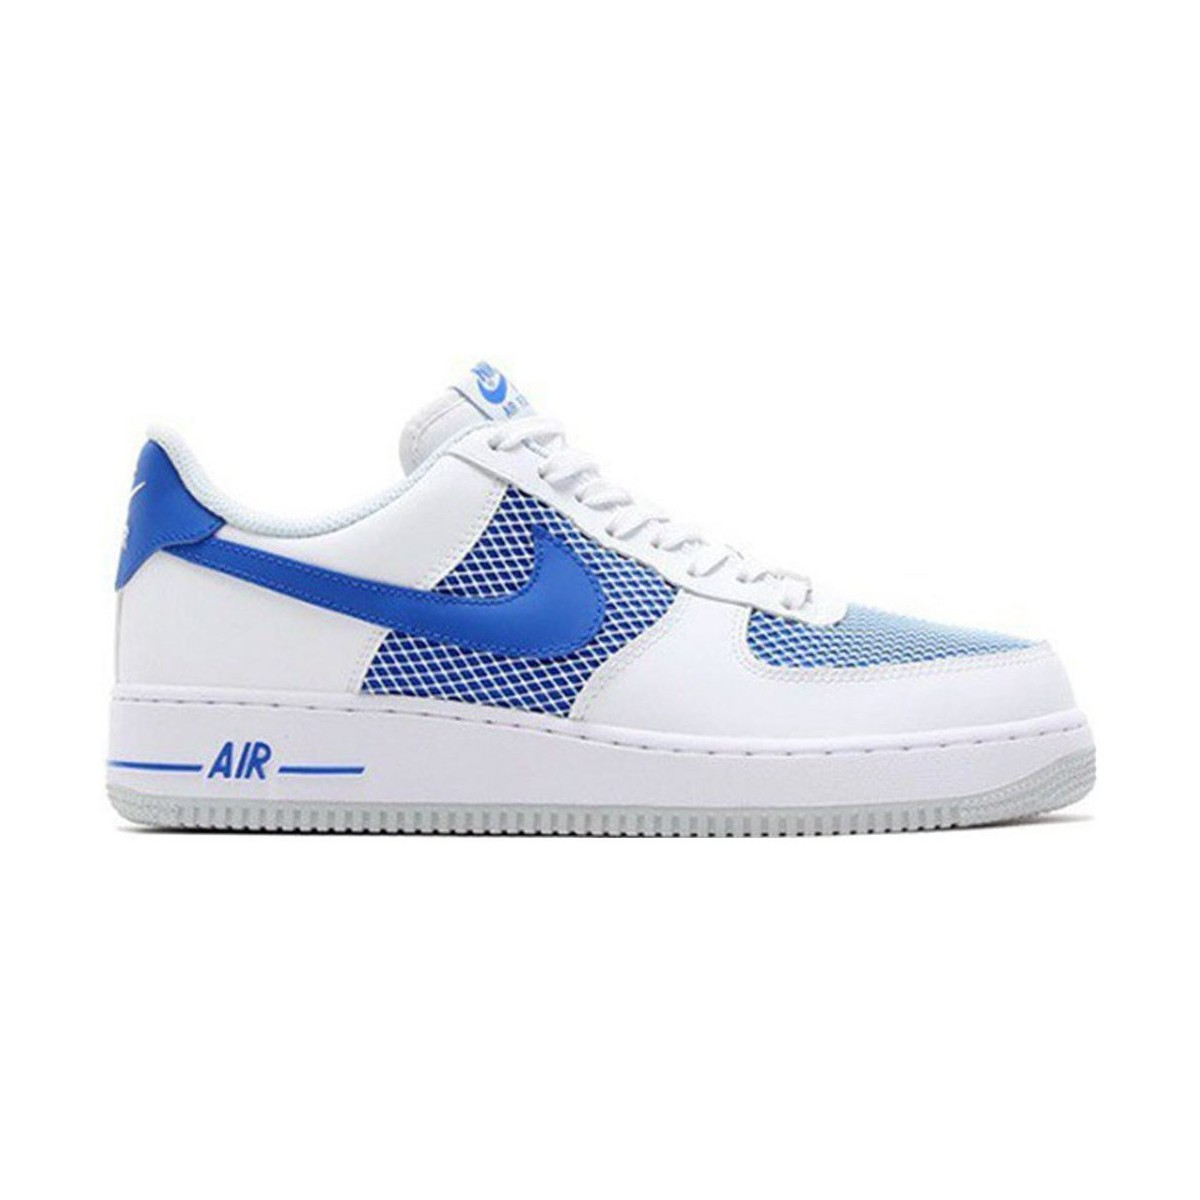 nike air force 1 07 blanc bleu chaussures baskets basses homme 111 10. Black Bedroom Furniture Sets. Home Design Ideas